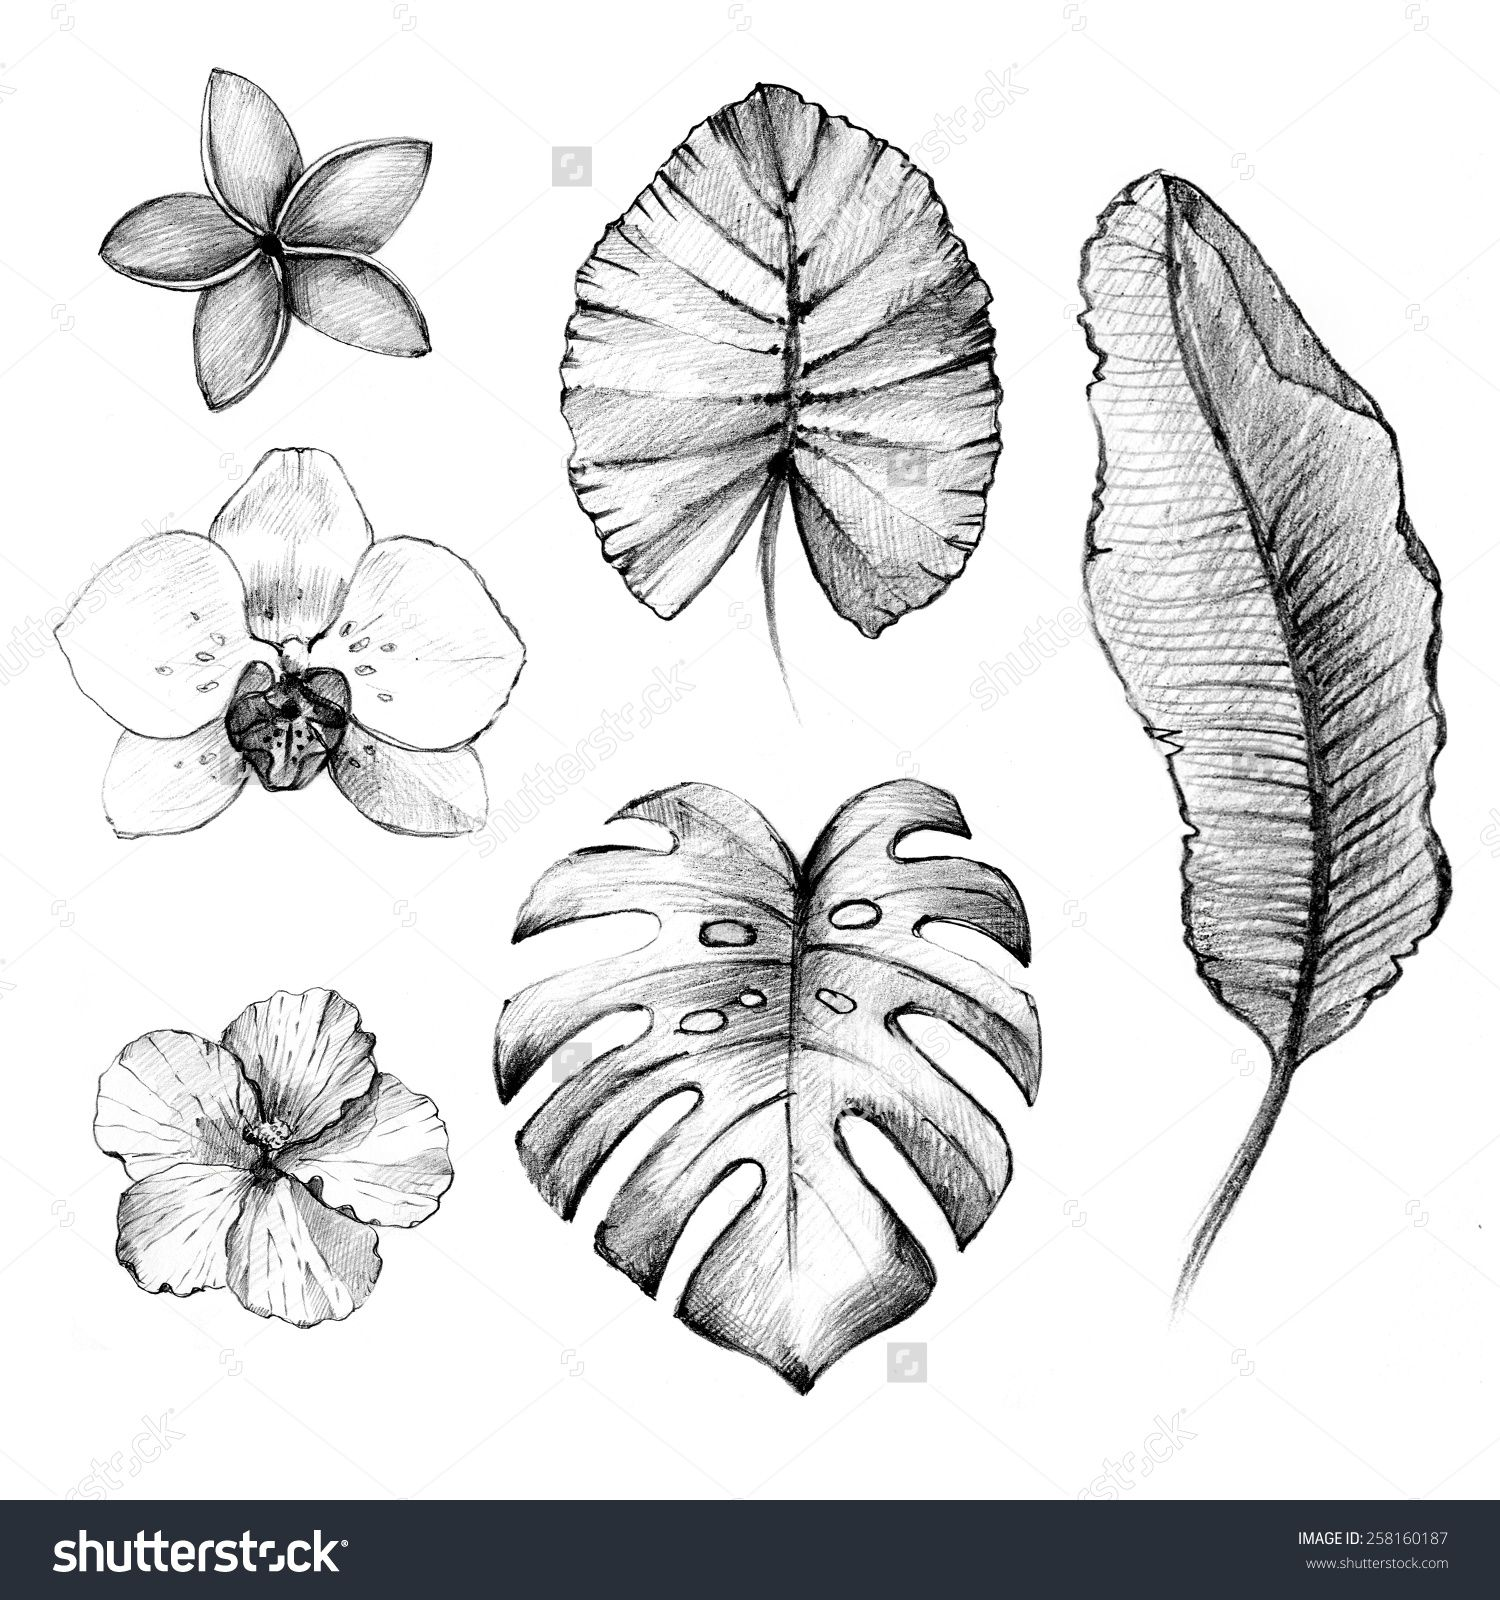 stock-photo-hand-drawn-tropical-flowers-and-plants-pencil-drawing ...